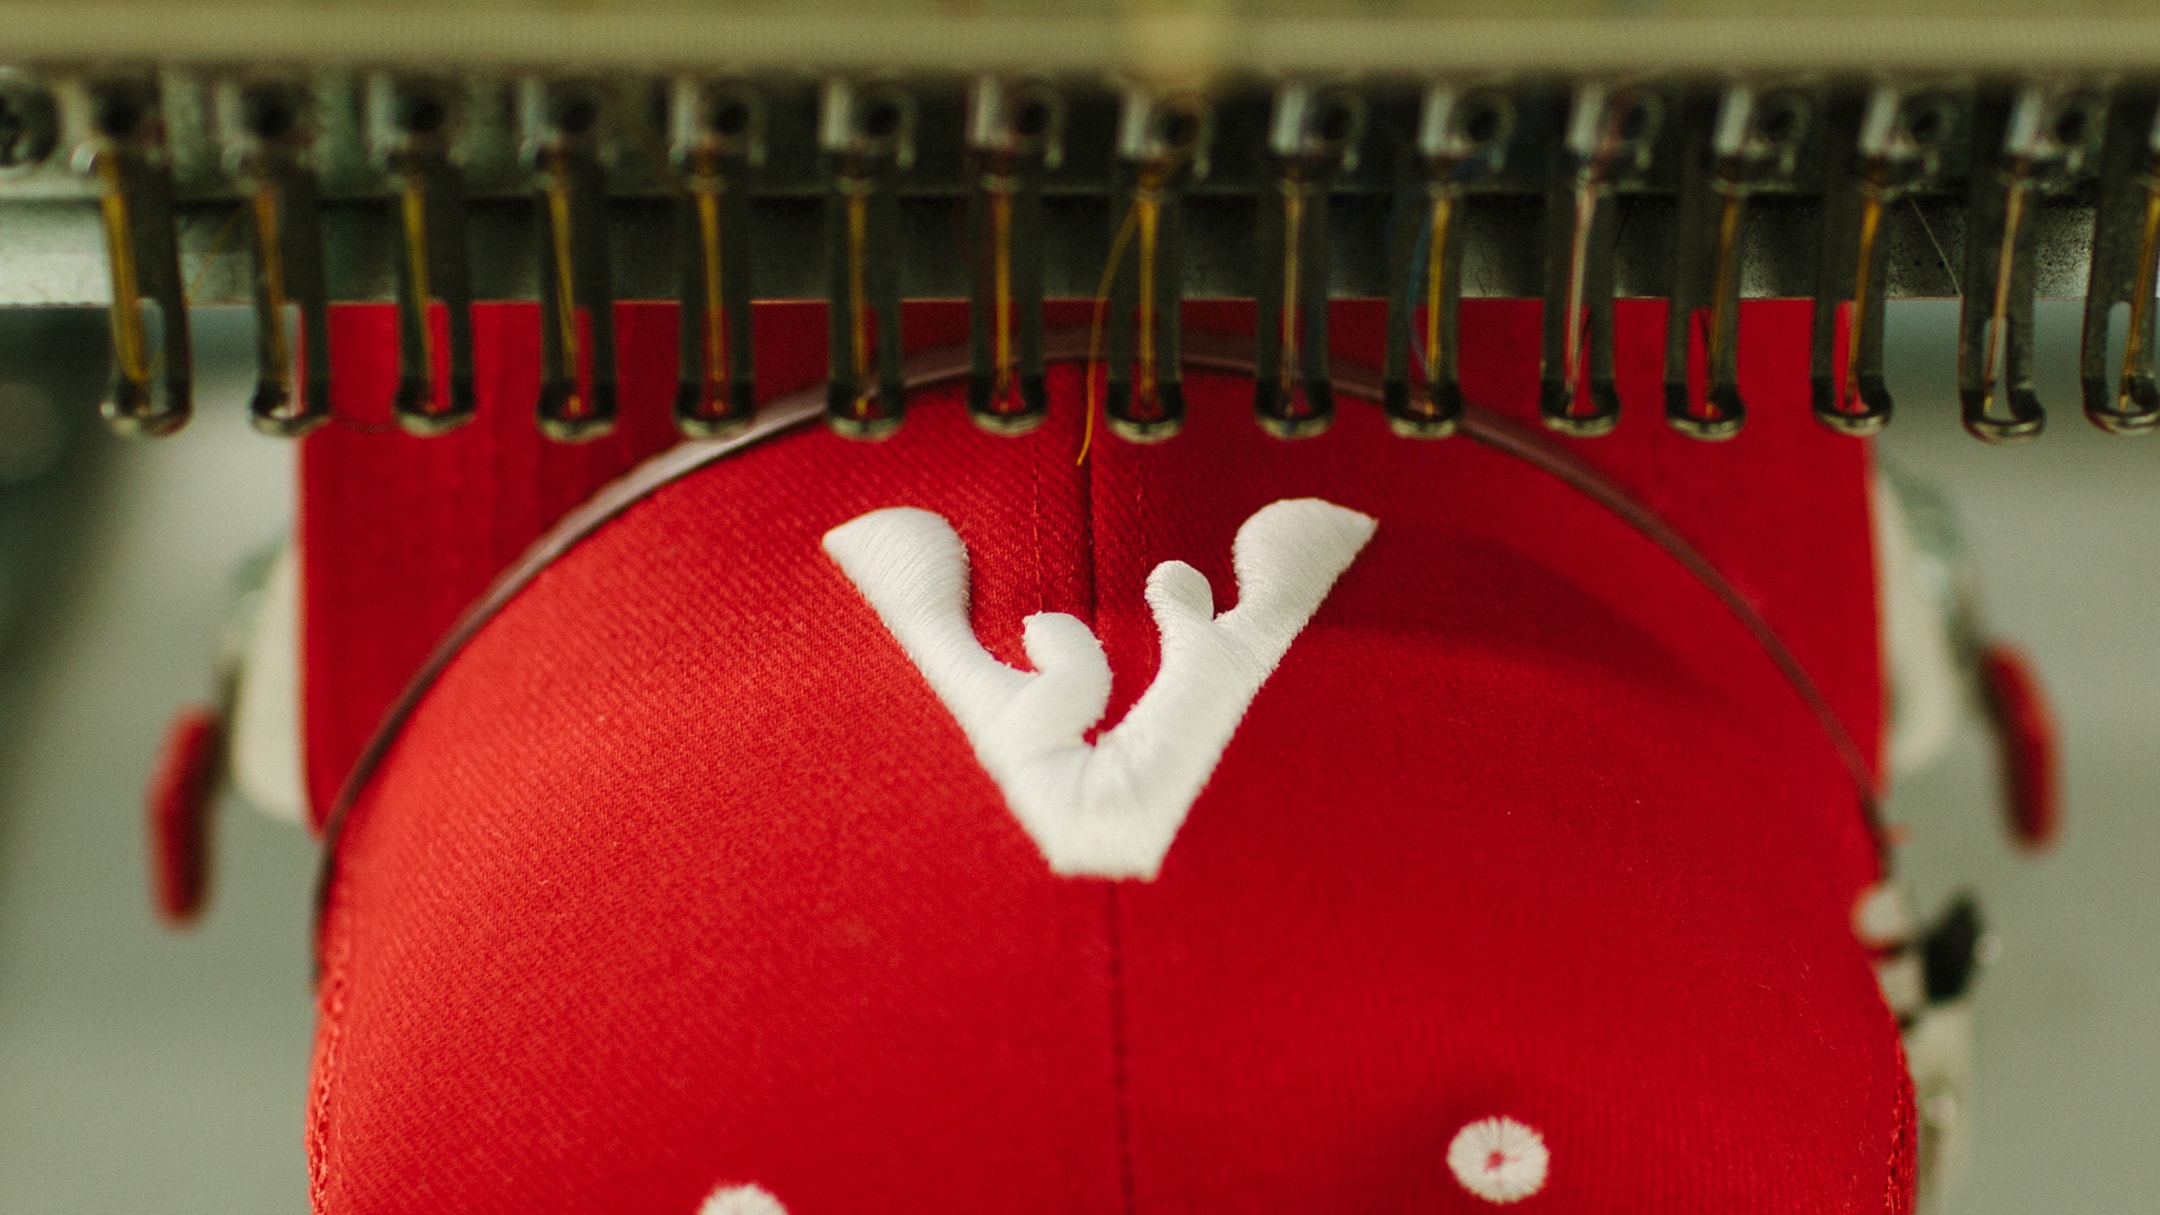 Spark advertising agency - logo on a red hat being embroidered with white thread.